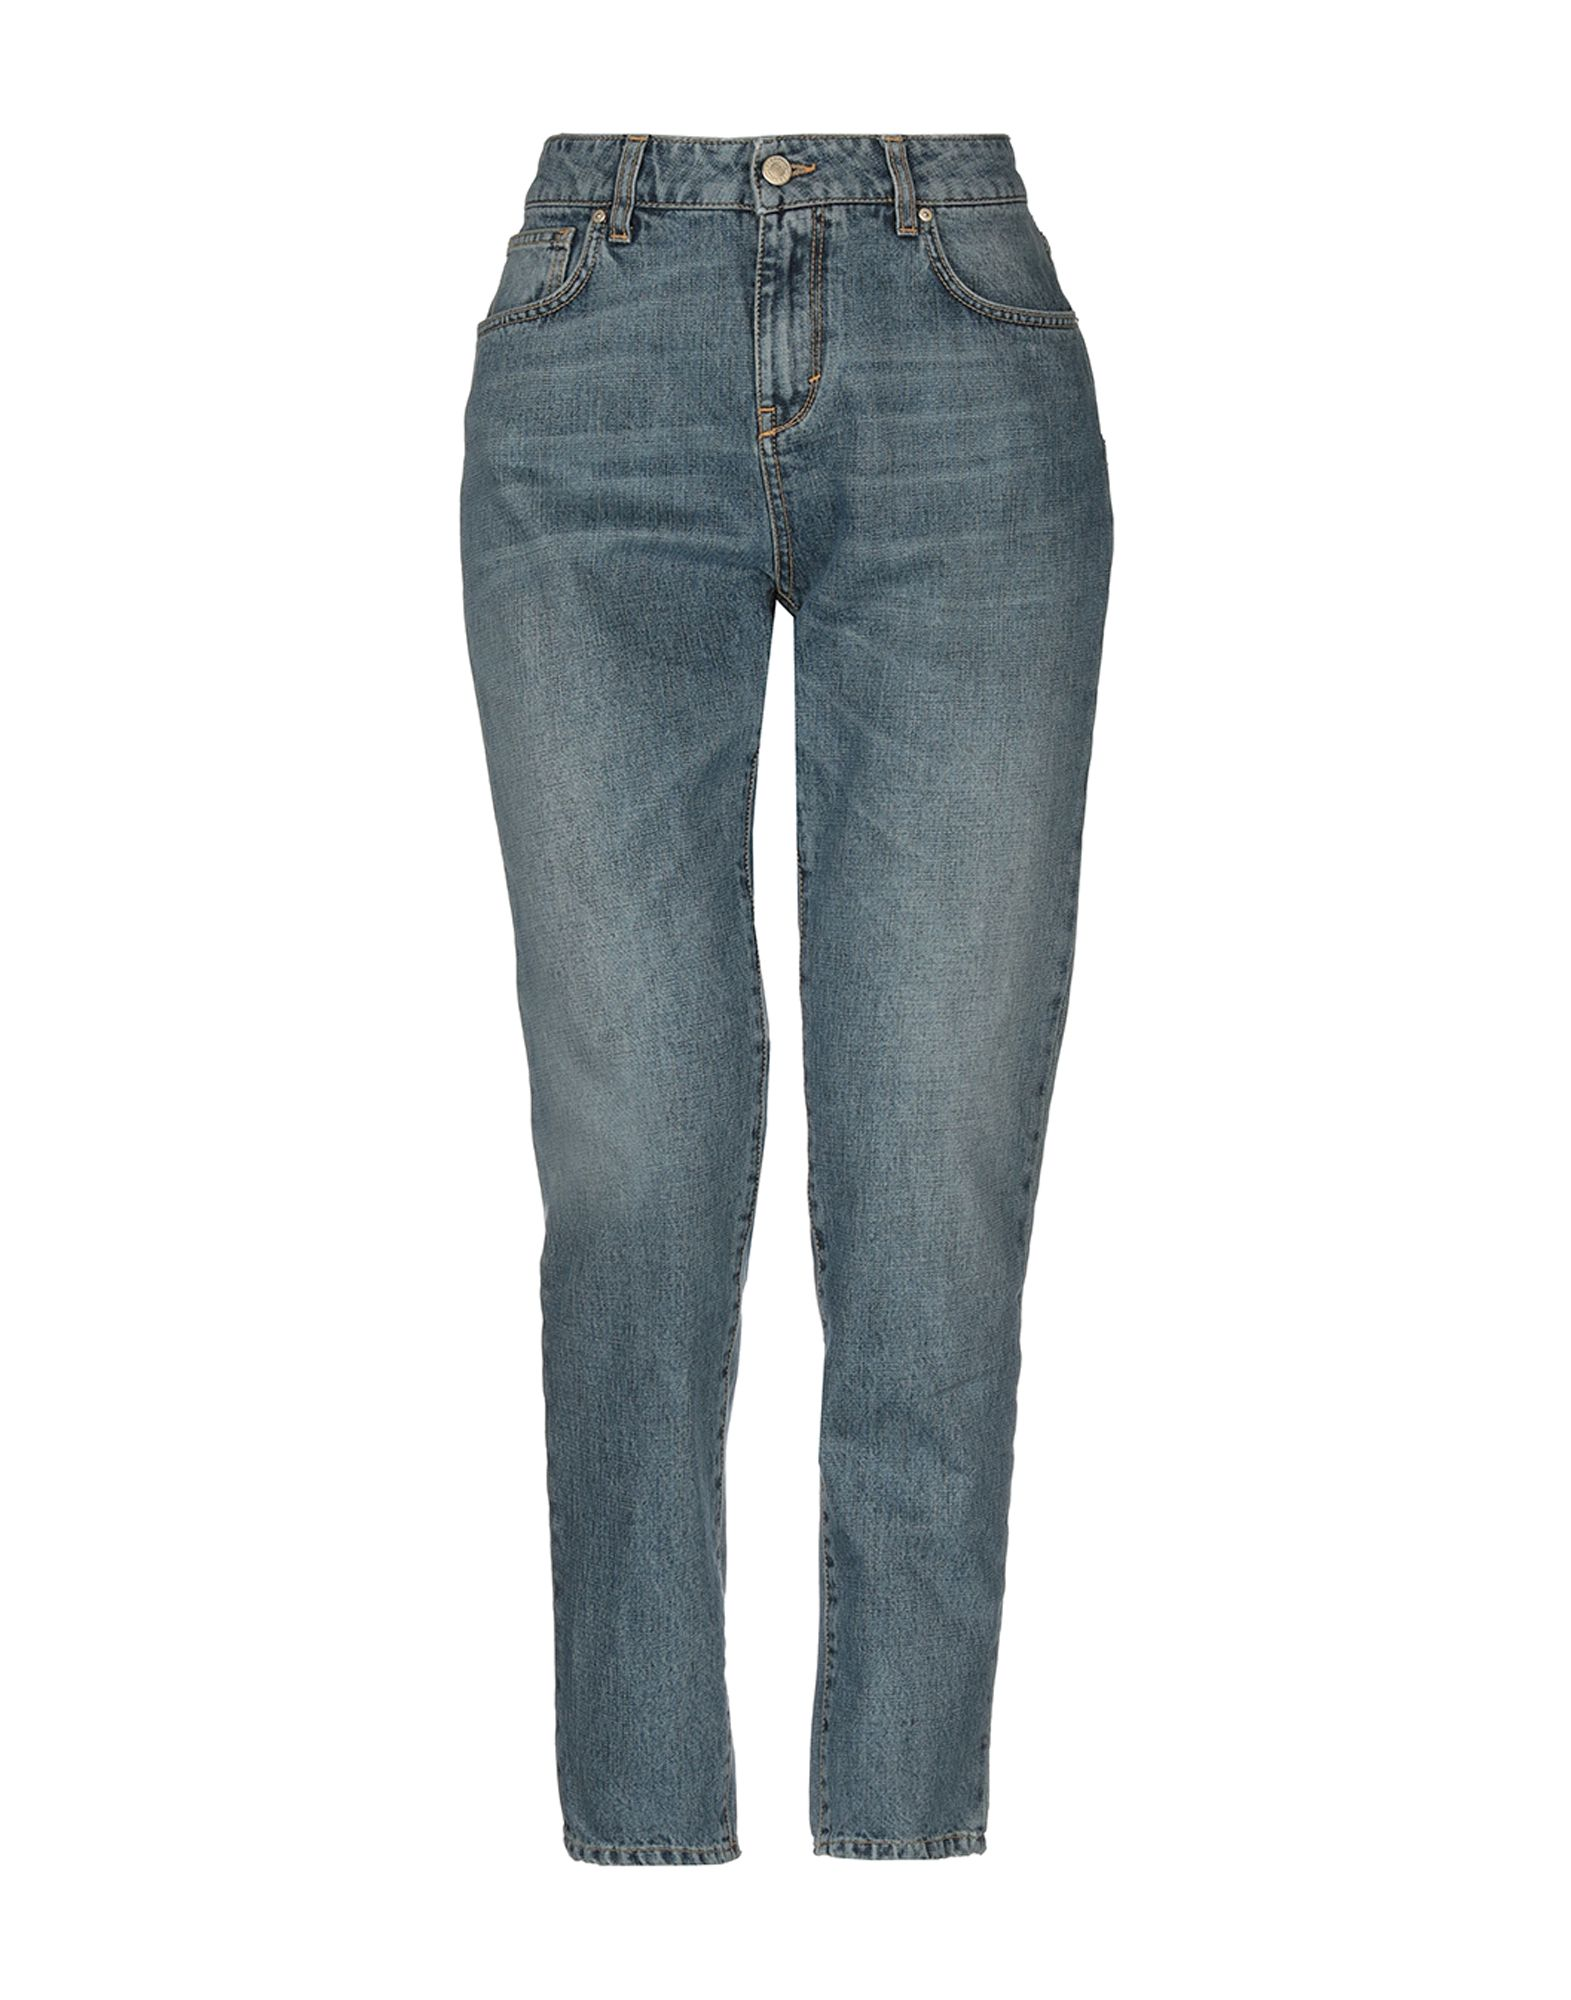 UP ★ JEANS Джинсовые брюки rolled up mom jeans